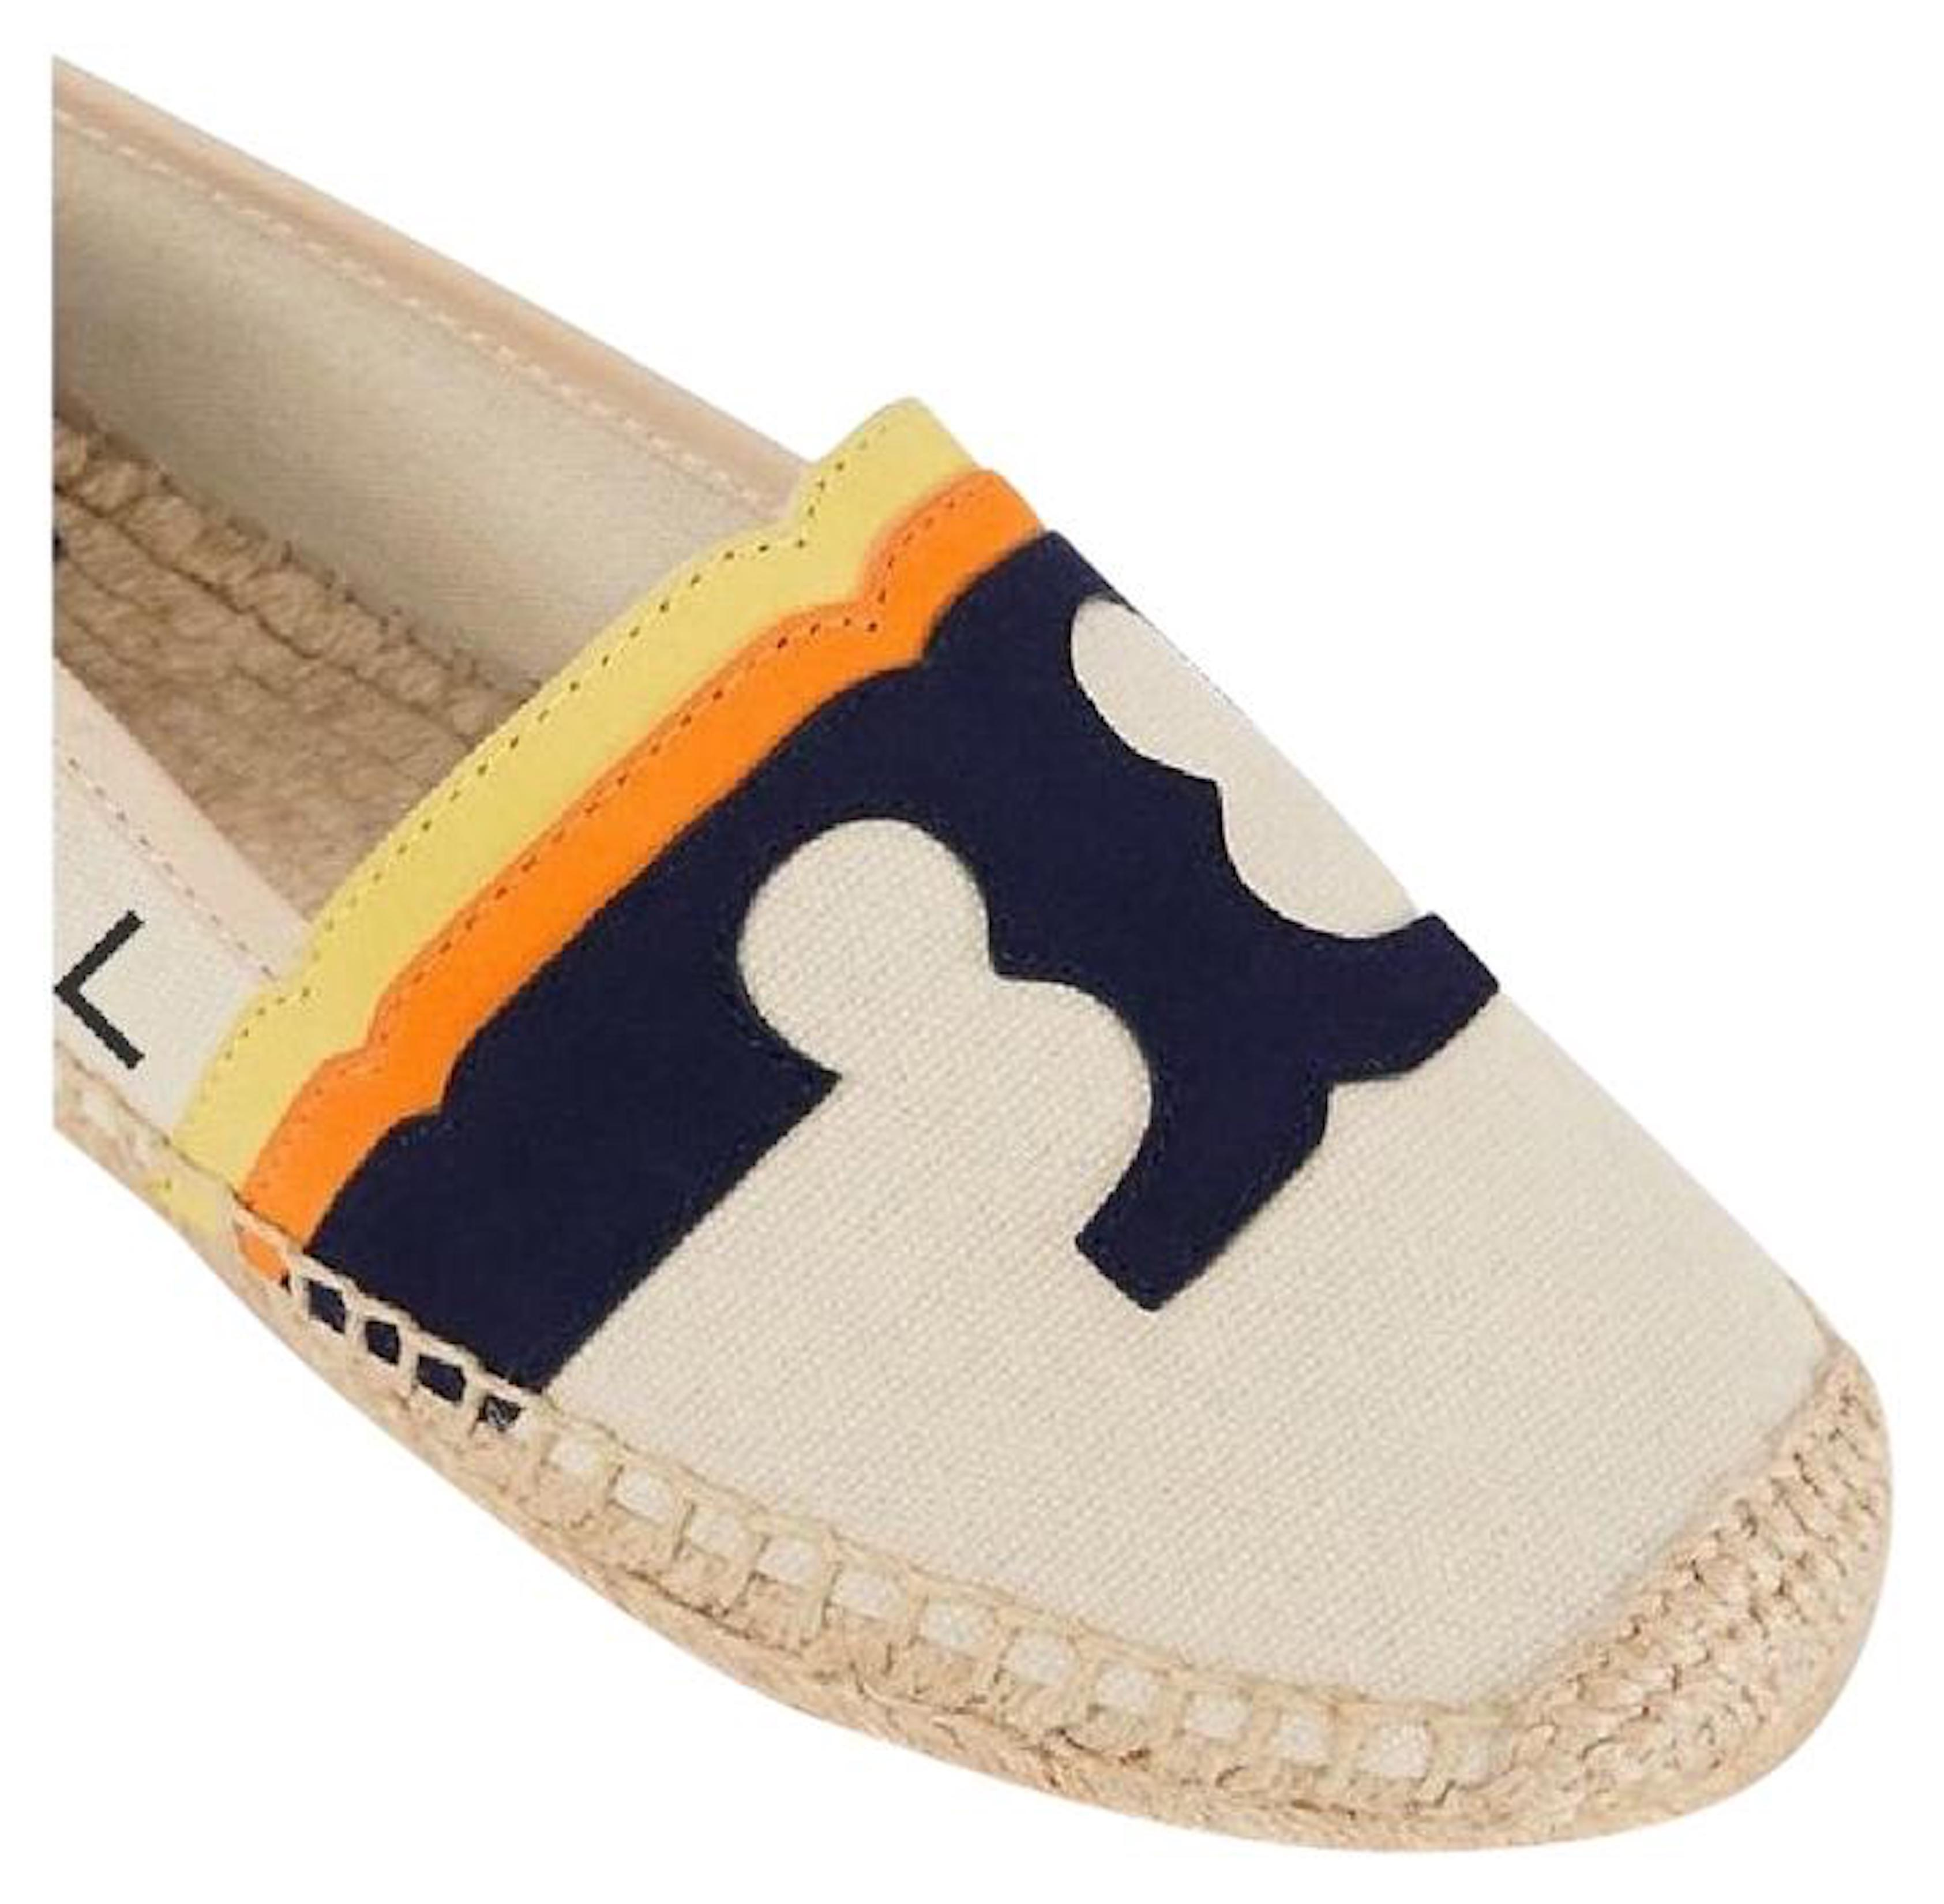 Tory Burch Leather Logo Espadrilles w/ Tags find great cheap online order for sale pay with paypal online ttaoWiT9C